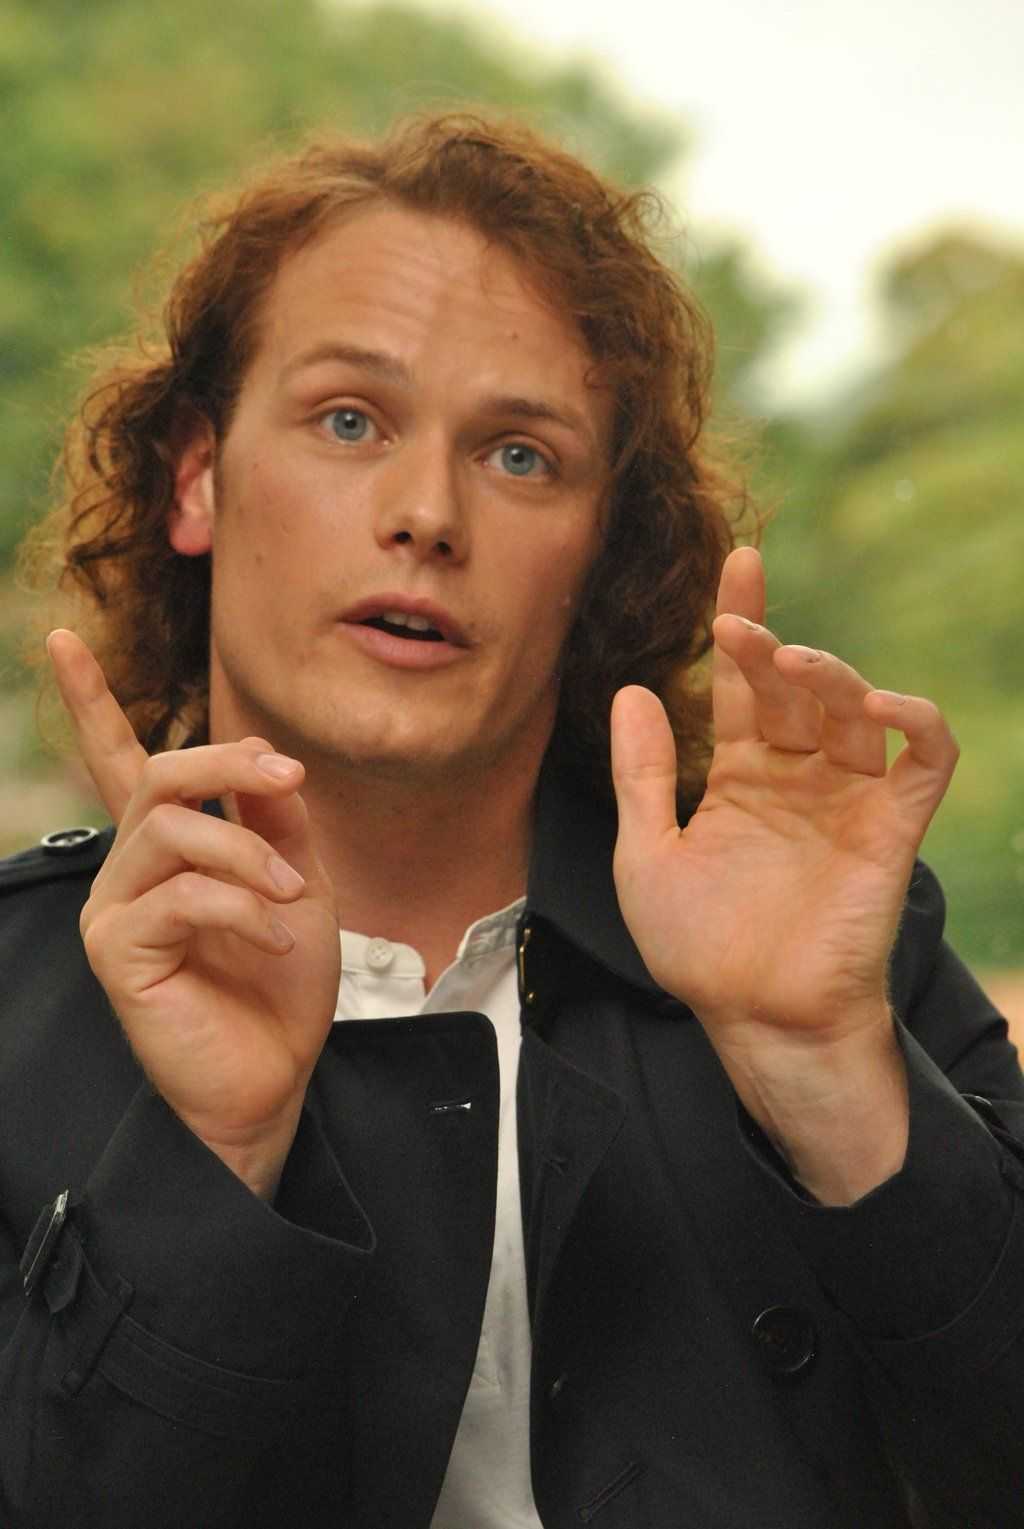 """Anne S.H. Mueller on Twitter: """"@Sheugs No snow needed. Just ask. #ShotOfSam ♥ https://t.co/ZZoe0CvI49"""""""